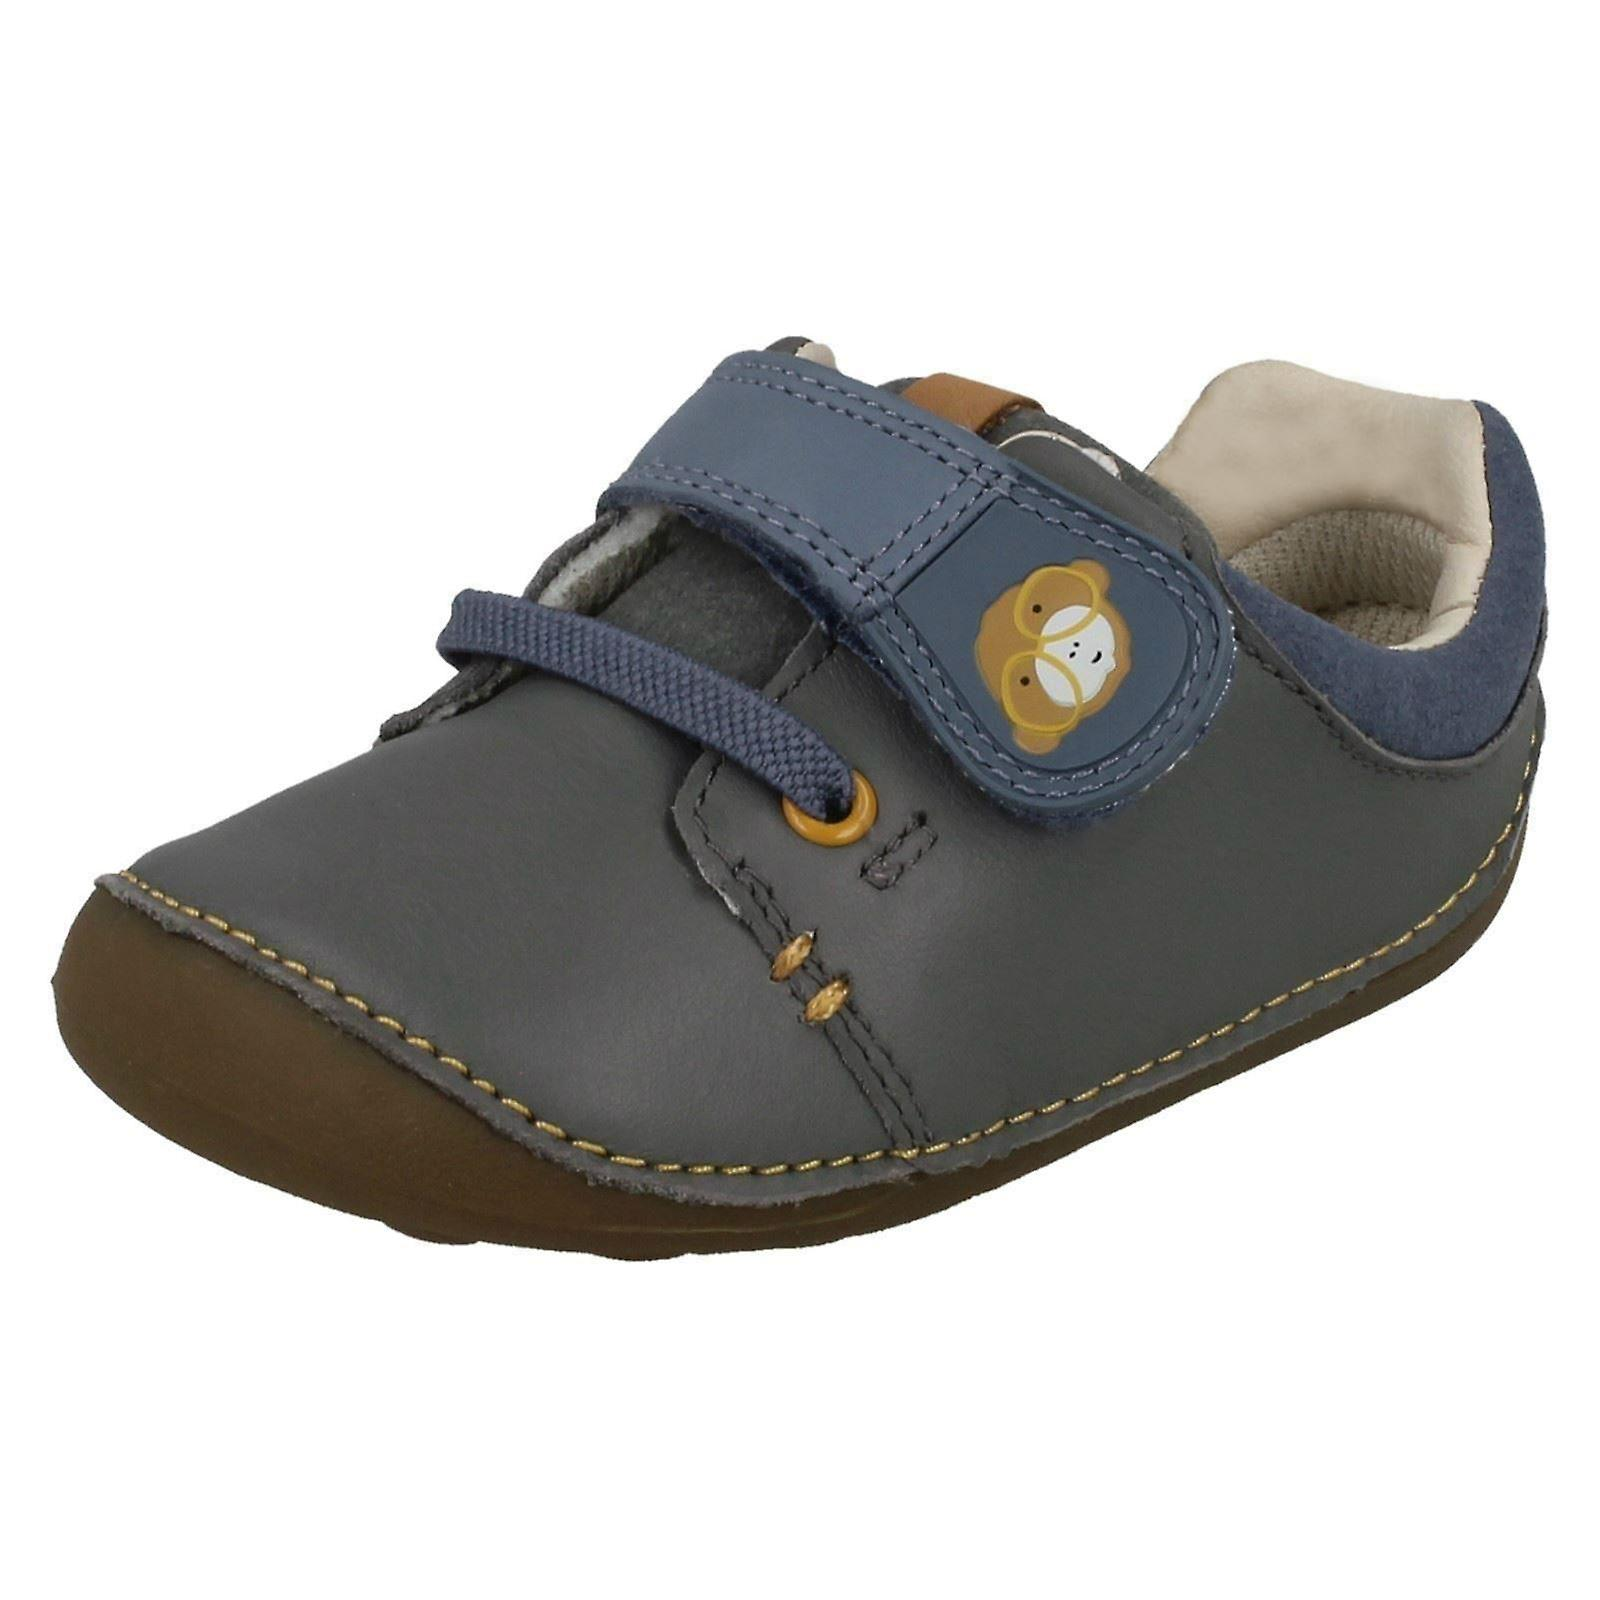 Boys Tiny Clarks First Shoes Tiny Boys Sid: Dress up :Man's/Woman's 49aed5